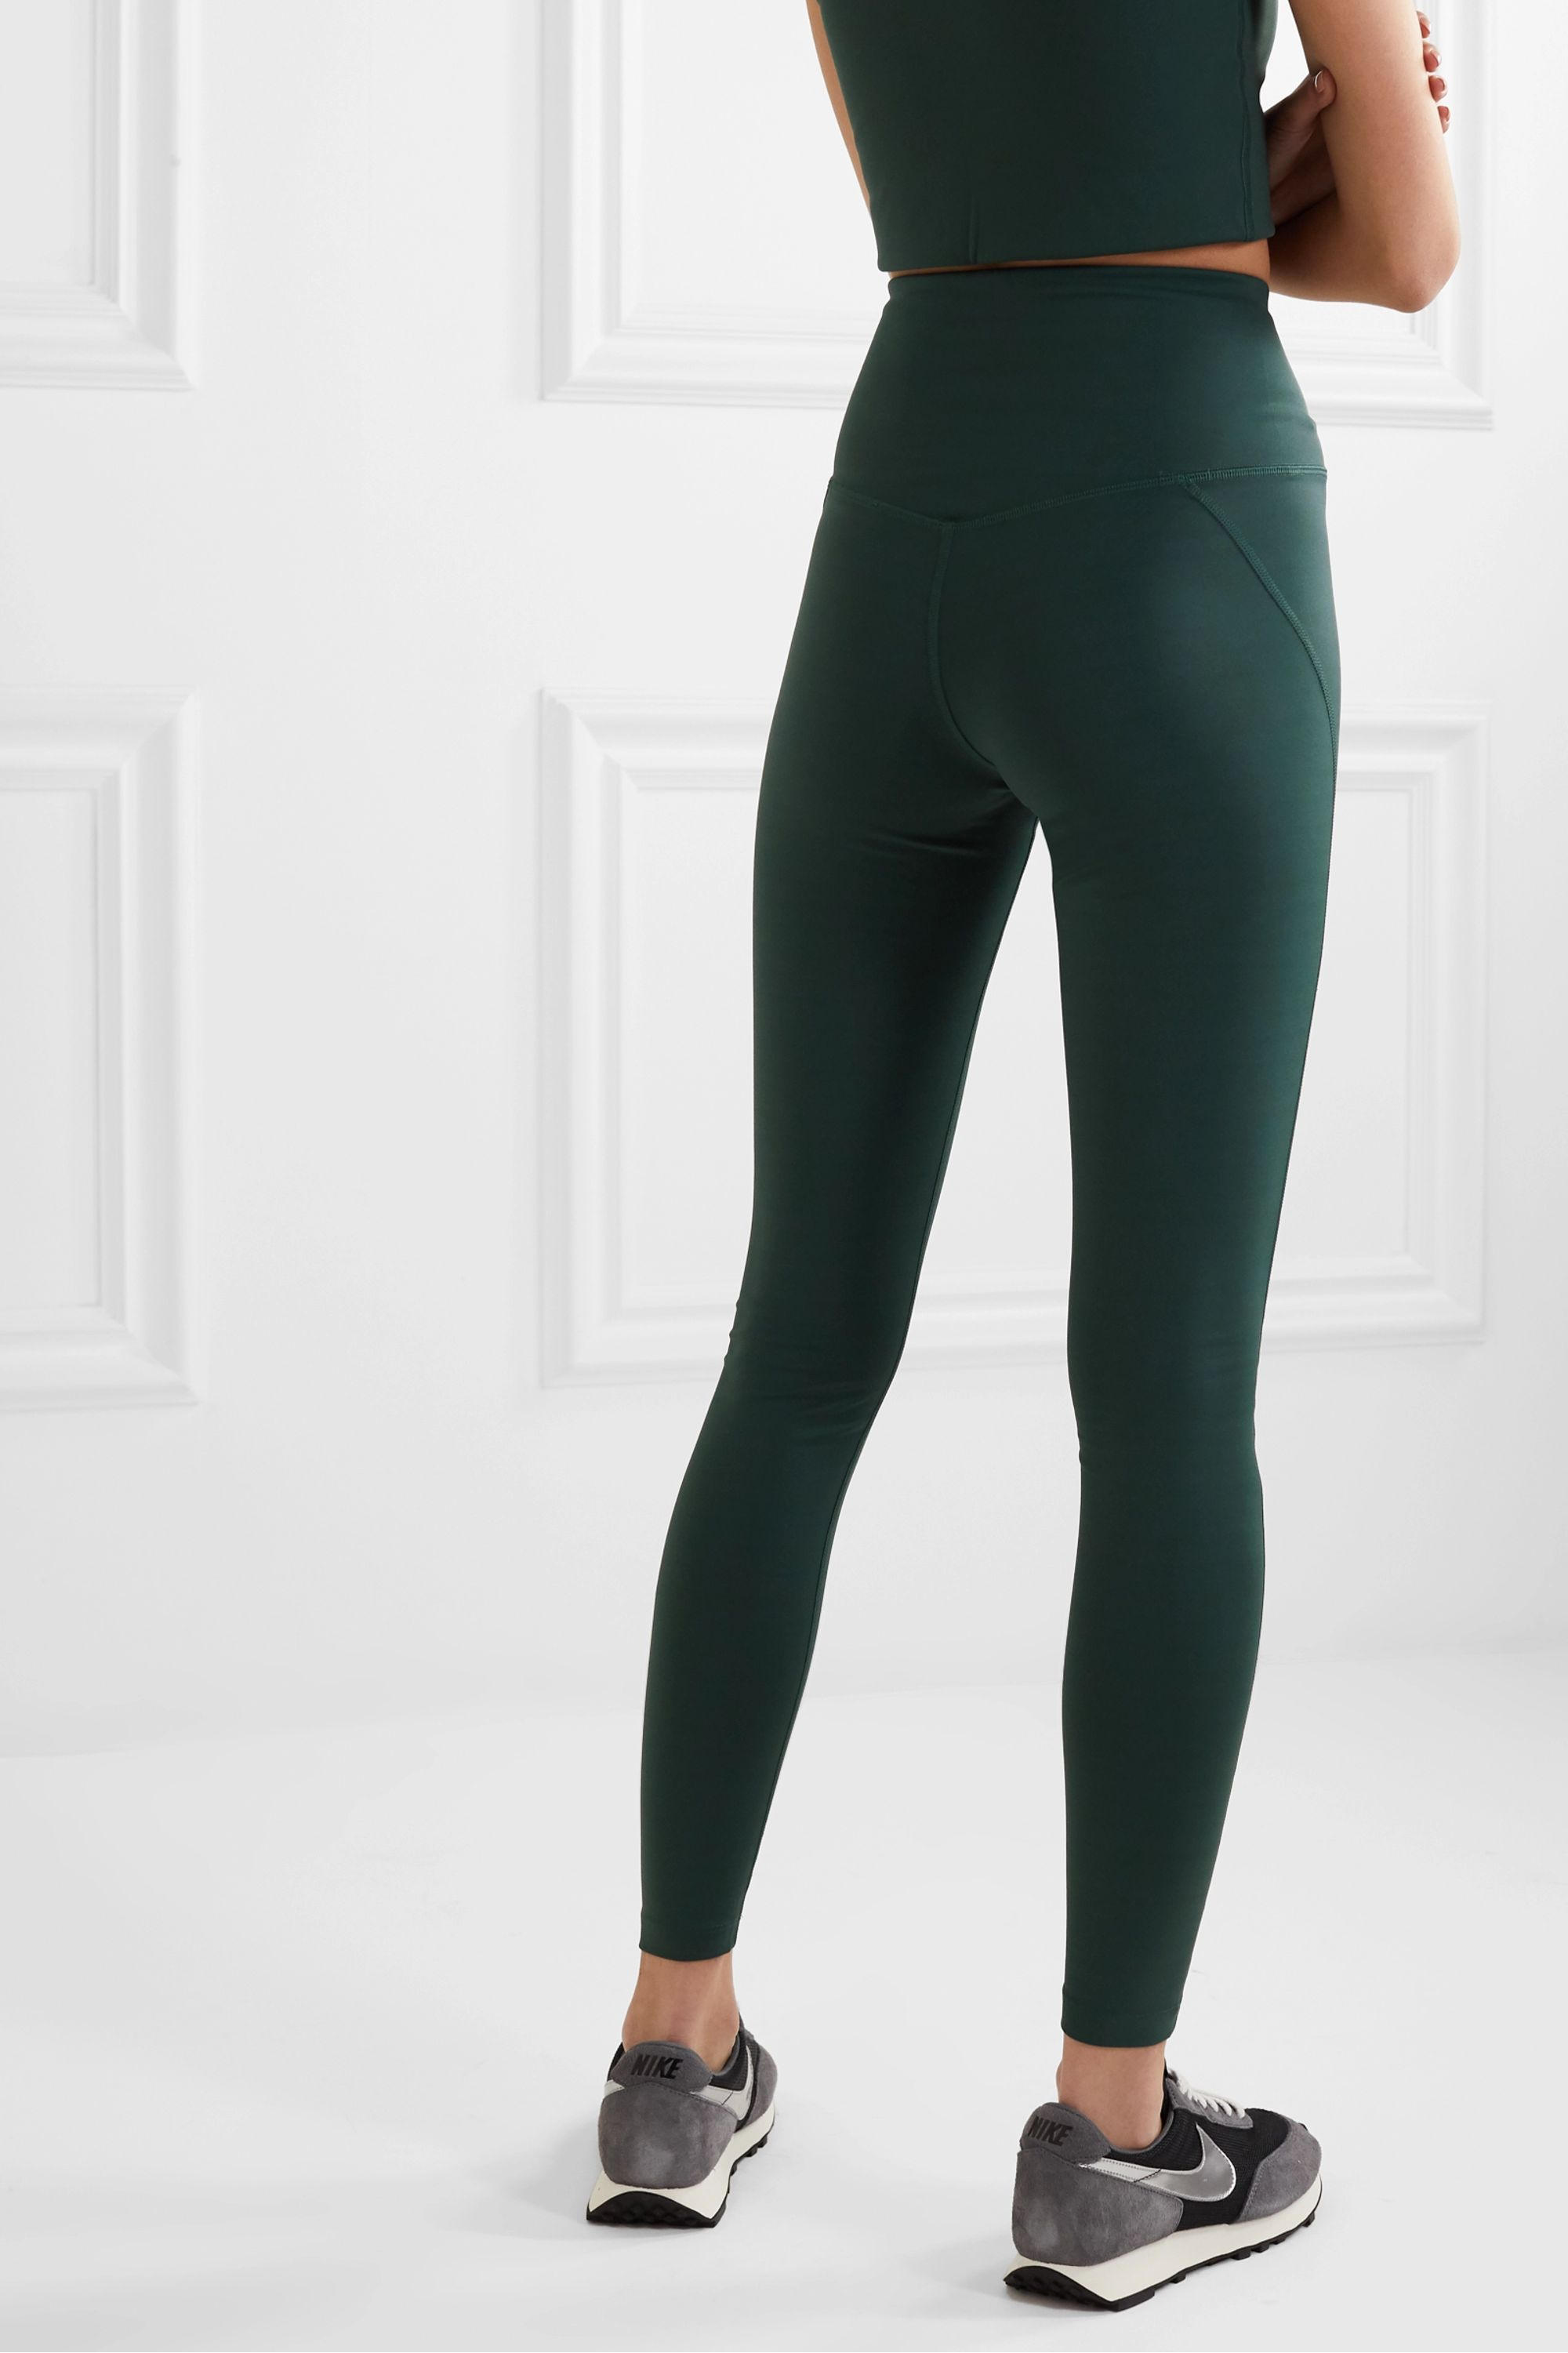 Girlfriend Collective Compressive stretch leggings